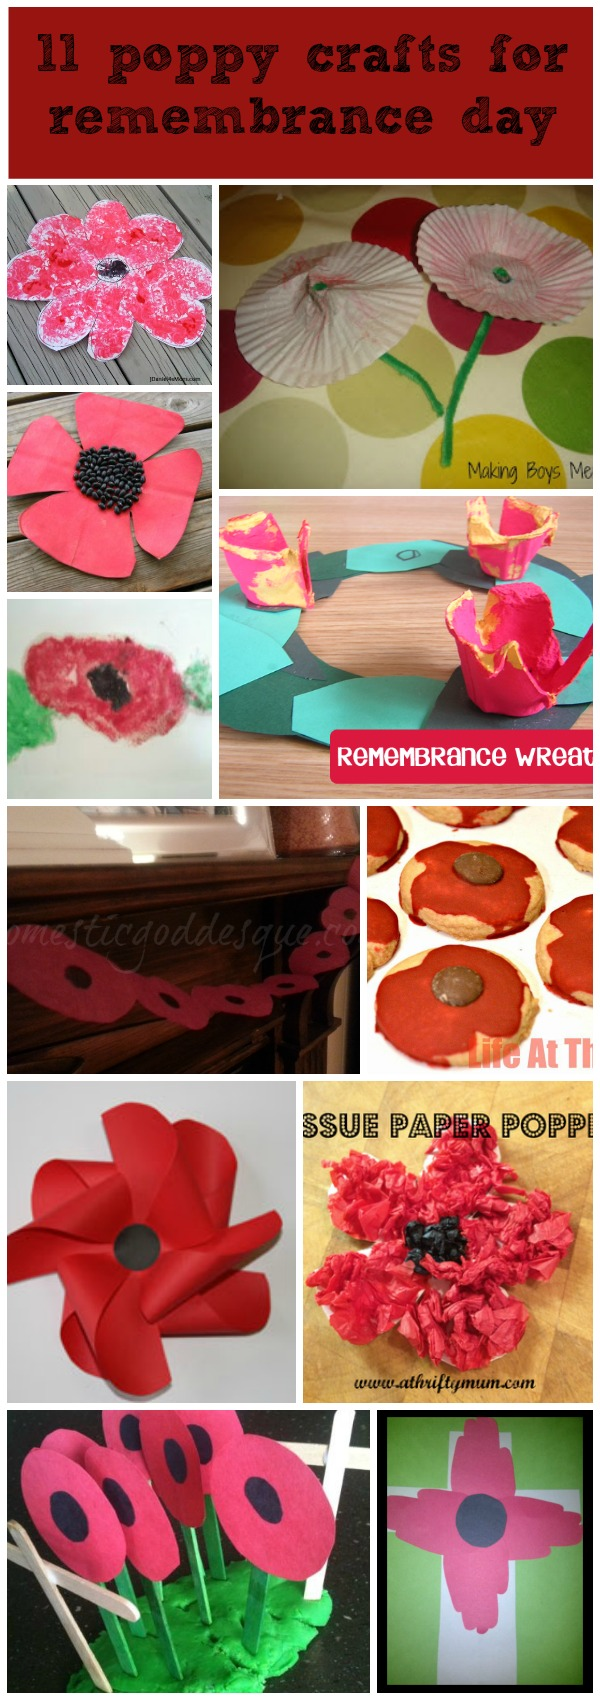 11 Poppy Crafts Art Or Food For Remembrance Day Mum In The Madhouse Simple Circuits Kids Http Wwwmakingboysmencom 2013 04